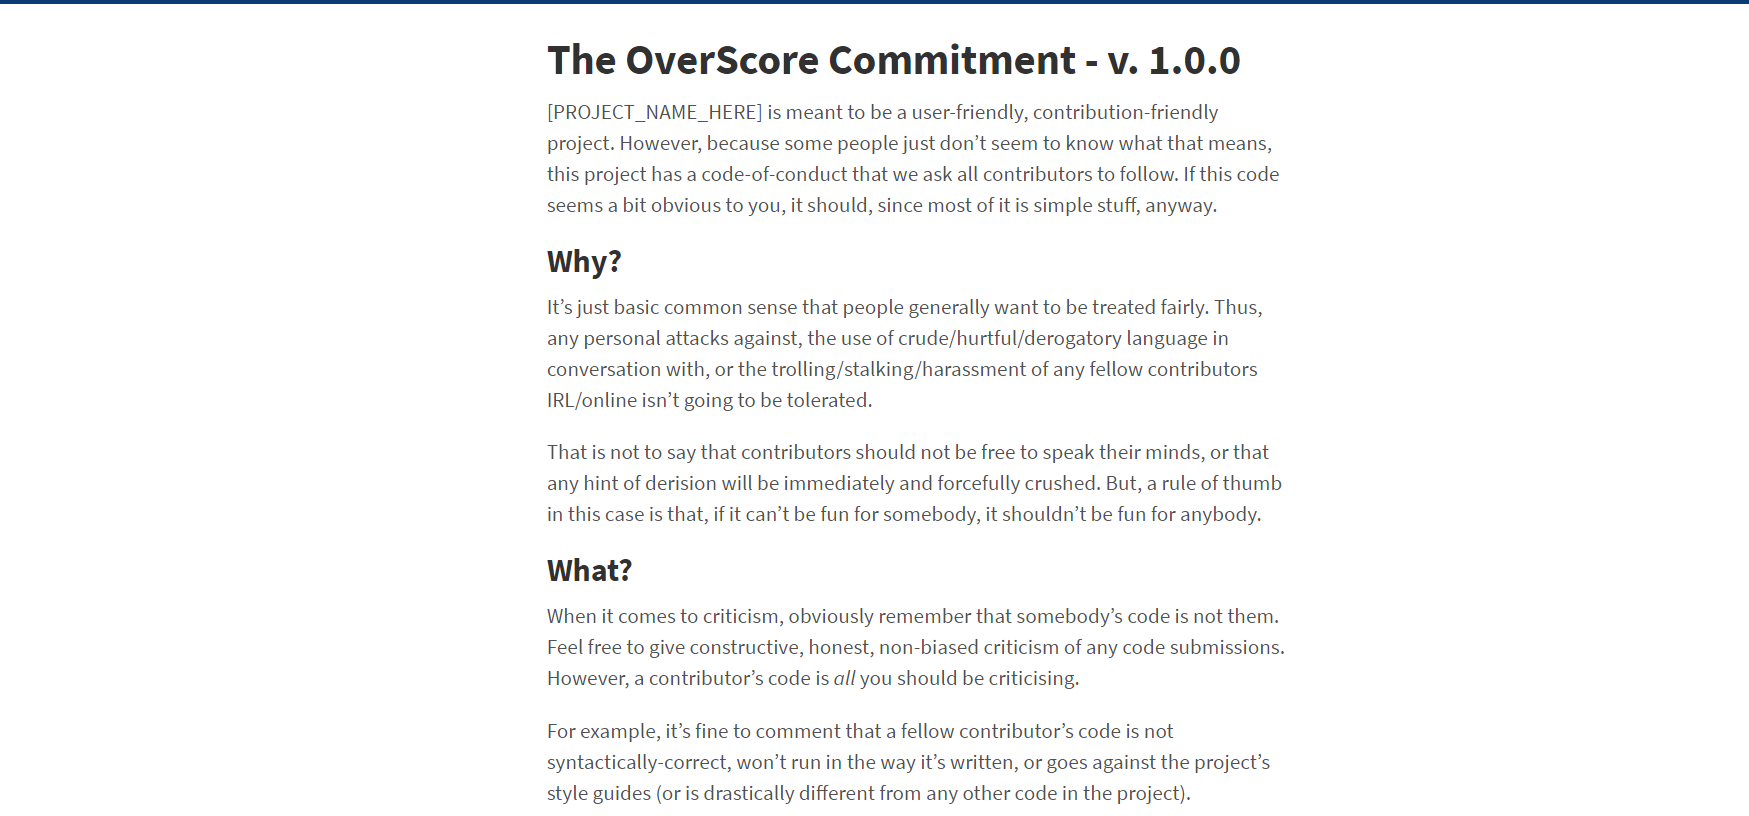 A screenshot of the OverScore Commitment's website